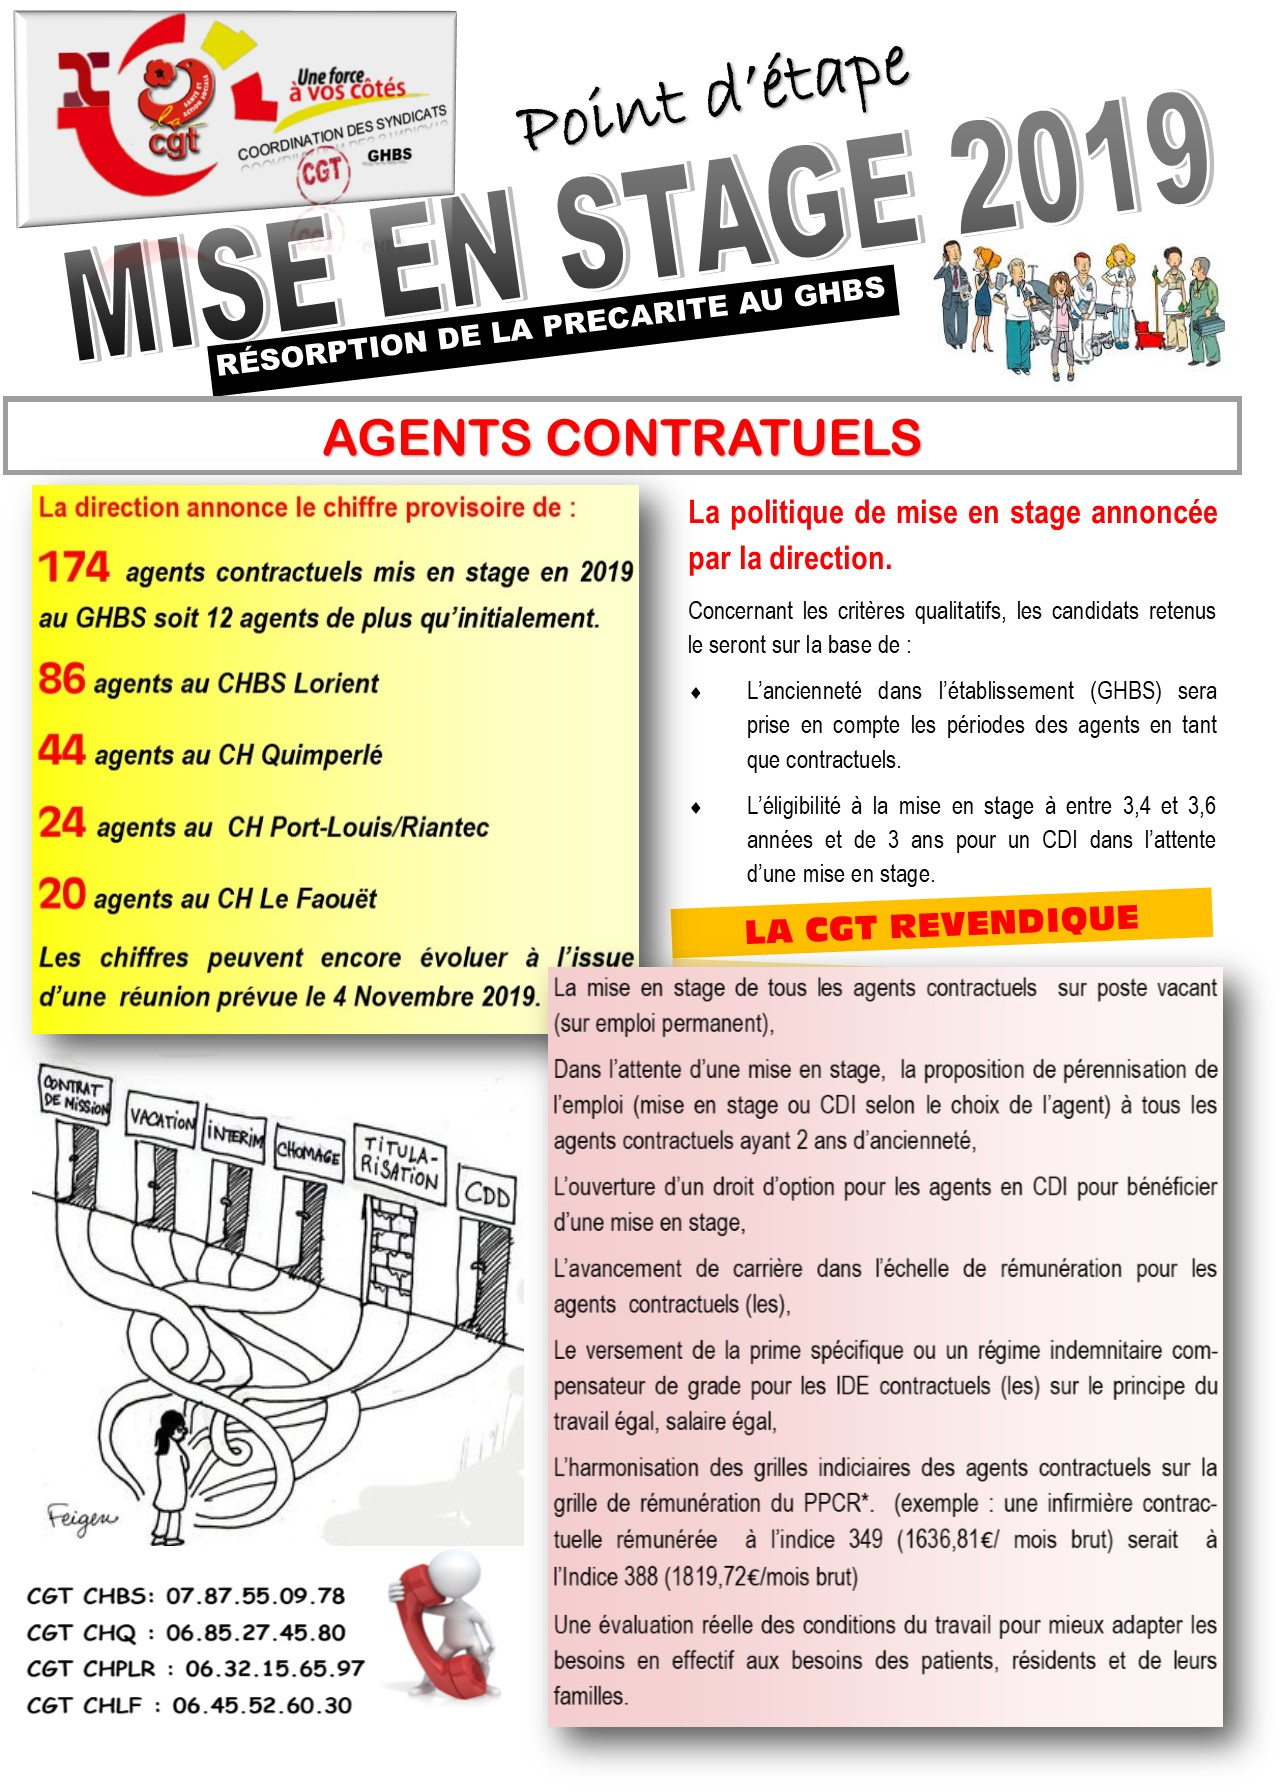 Tract mise en stage 2019